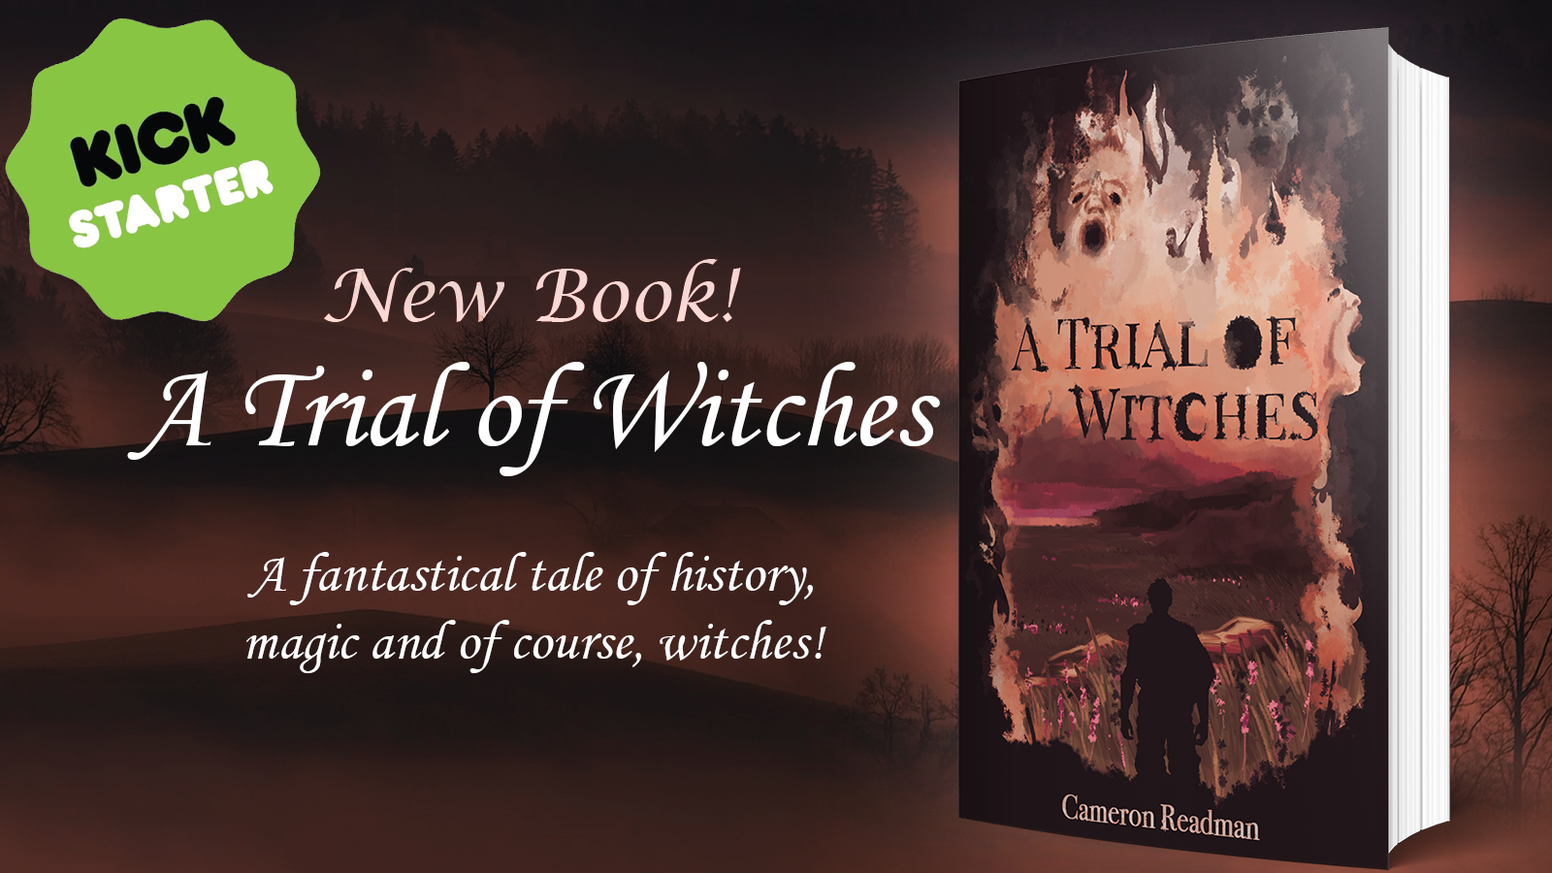 A new novel from the creators of the wizarding school experience; Bothwell School of Witchcraft